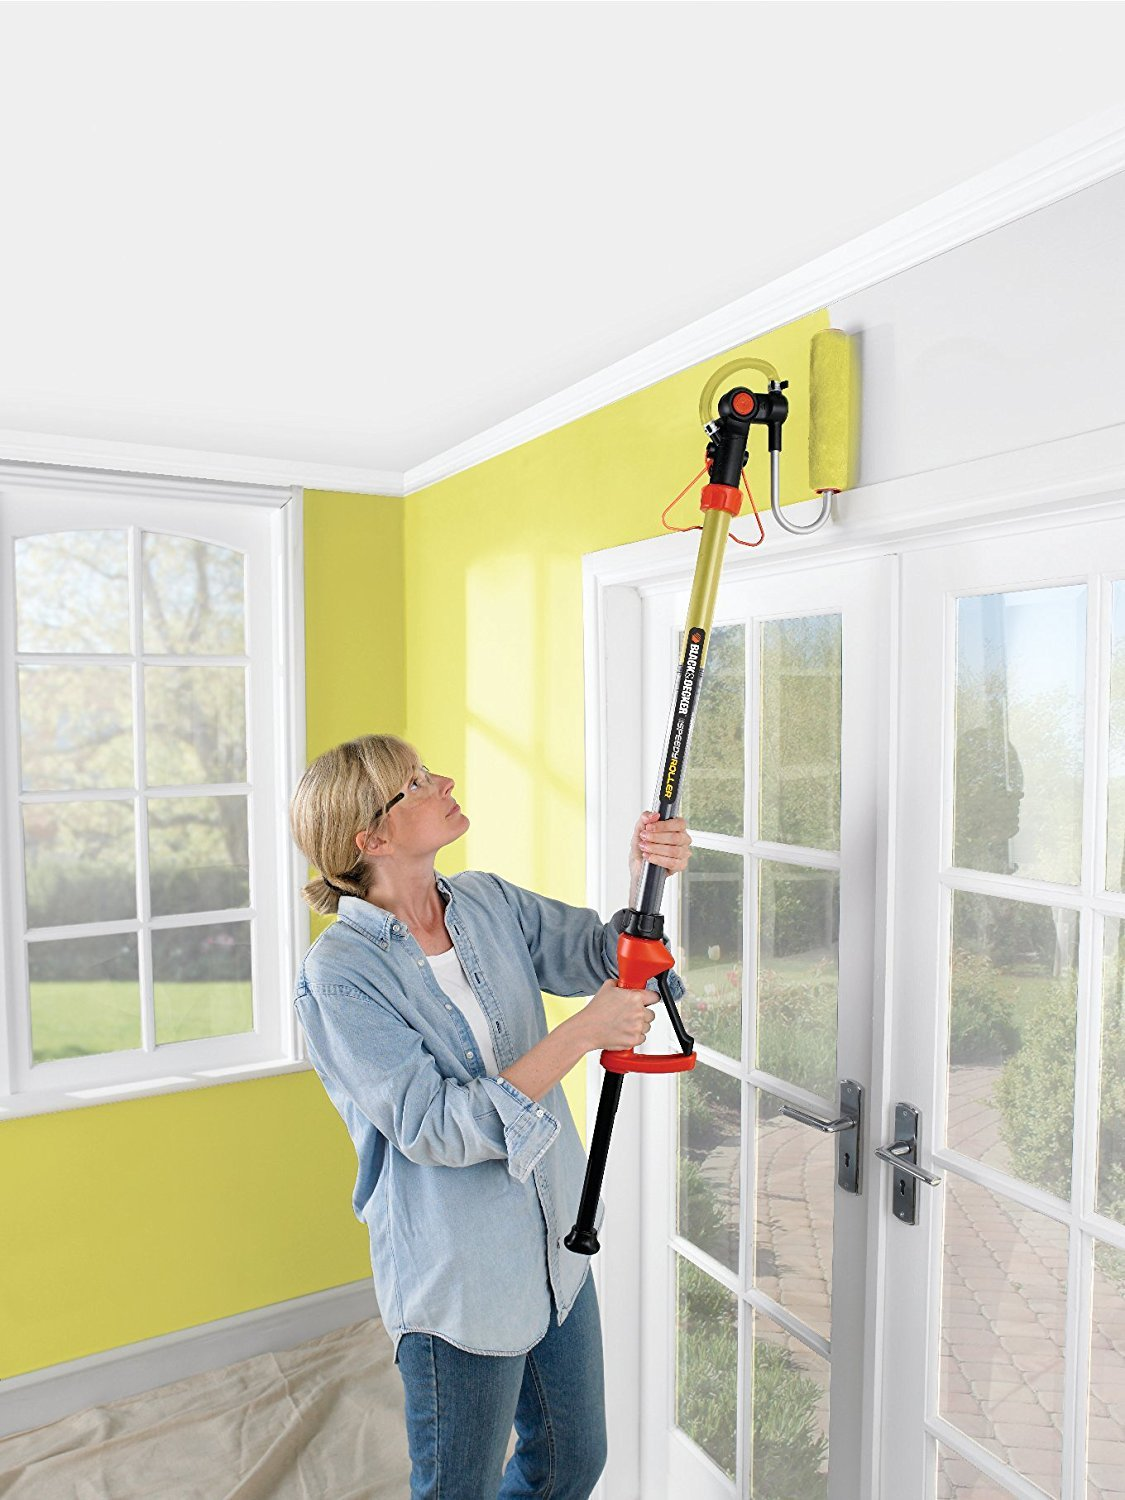 Woman painting wall yellow with black and decker roller